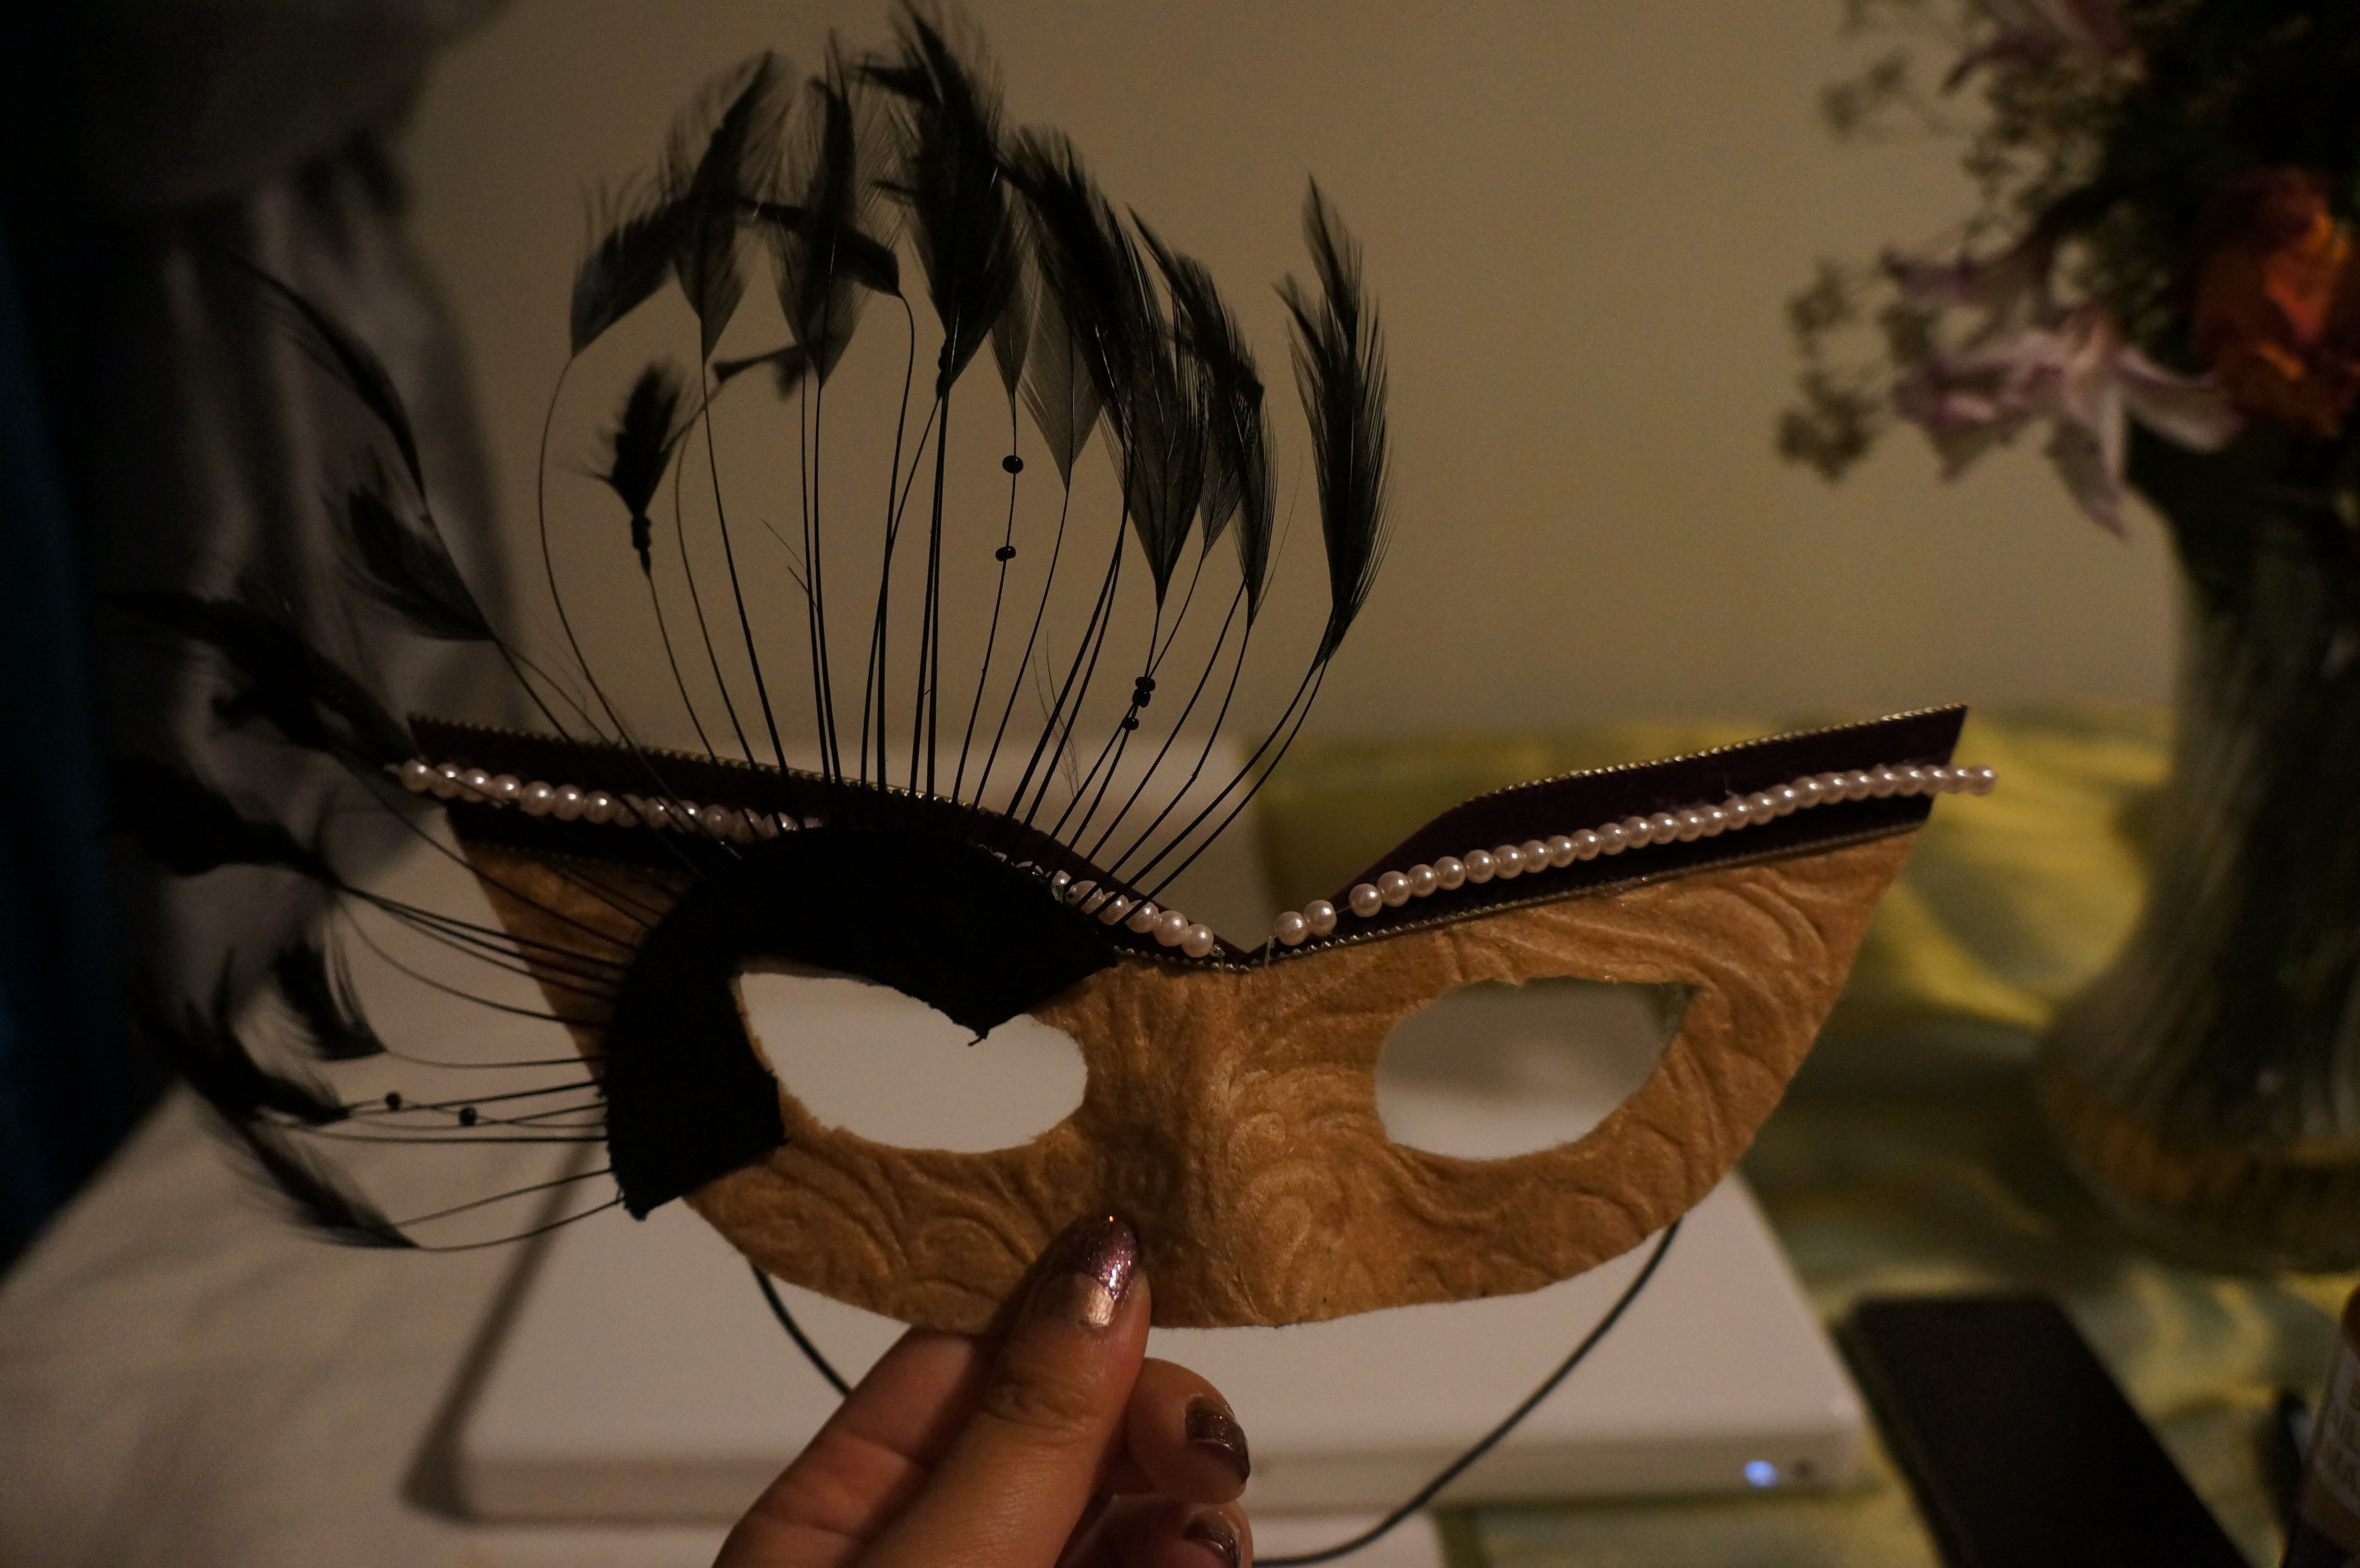 Best ideas about DIY Masquerade Masks . Save or Pin DIY Masquerade Mask Now.